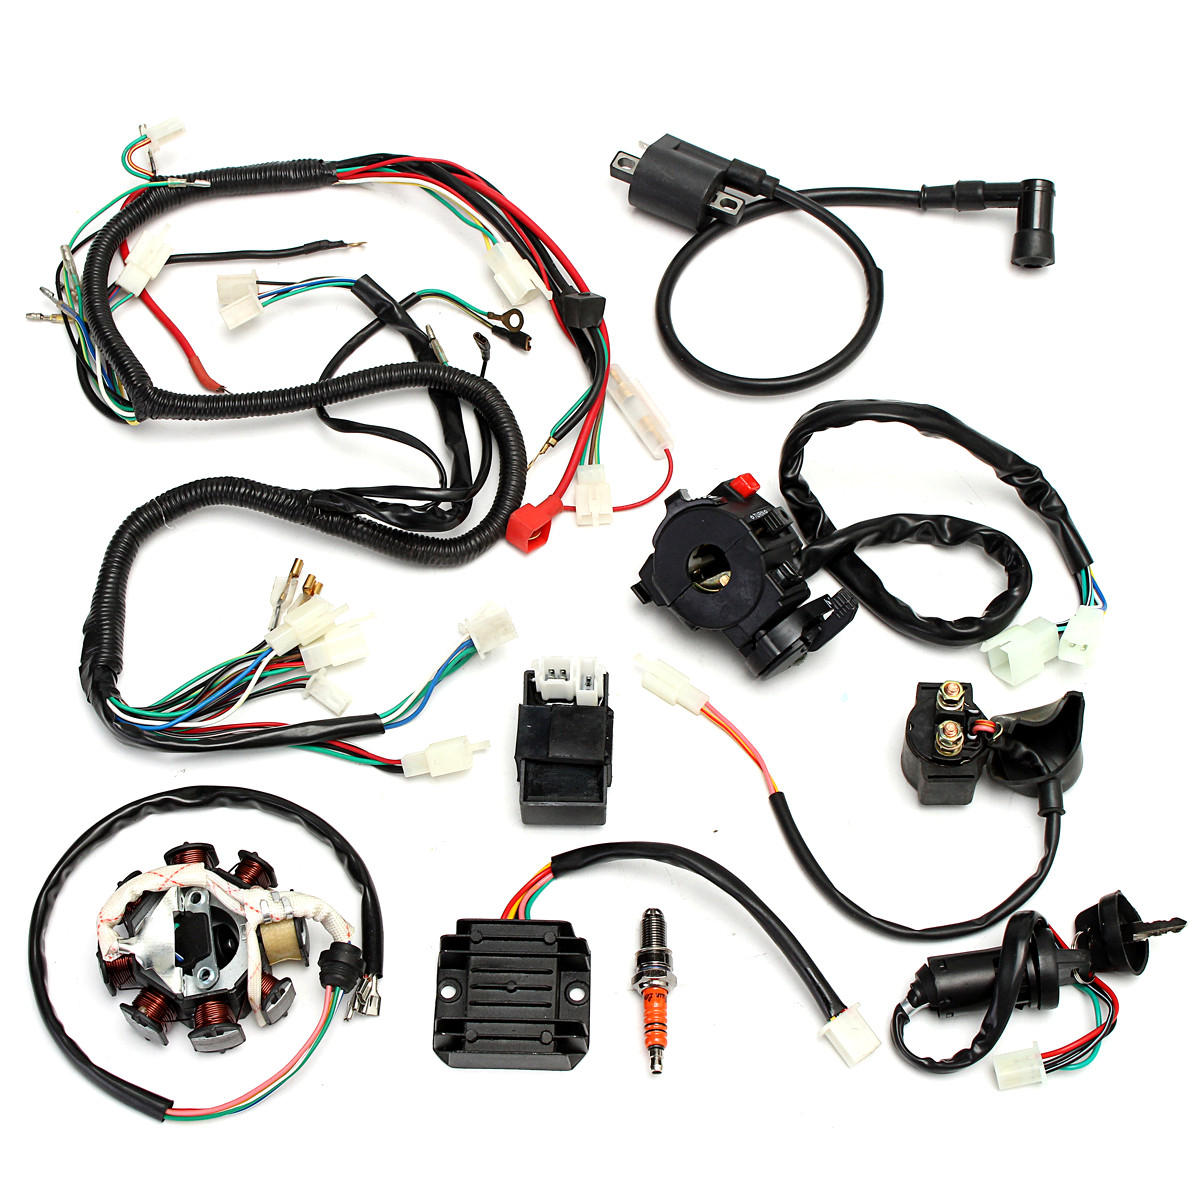 complete electrics wiring harness for chinese dirt bike atv quad 150-250  300cc cod